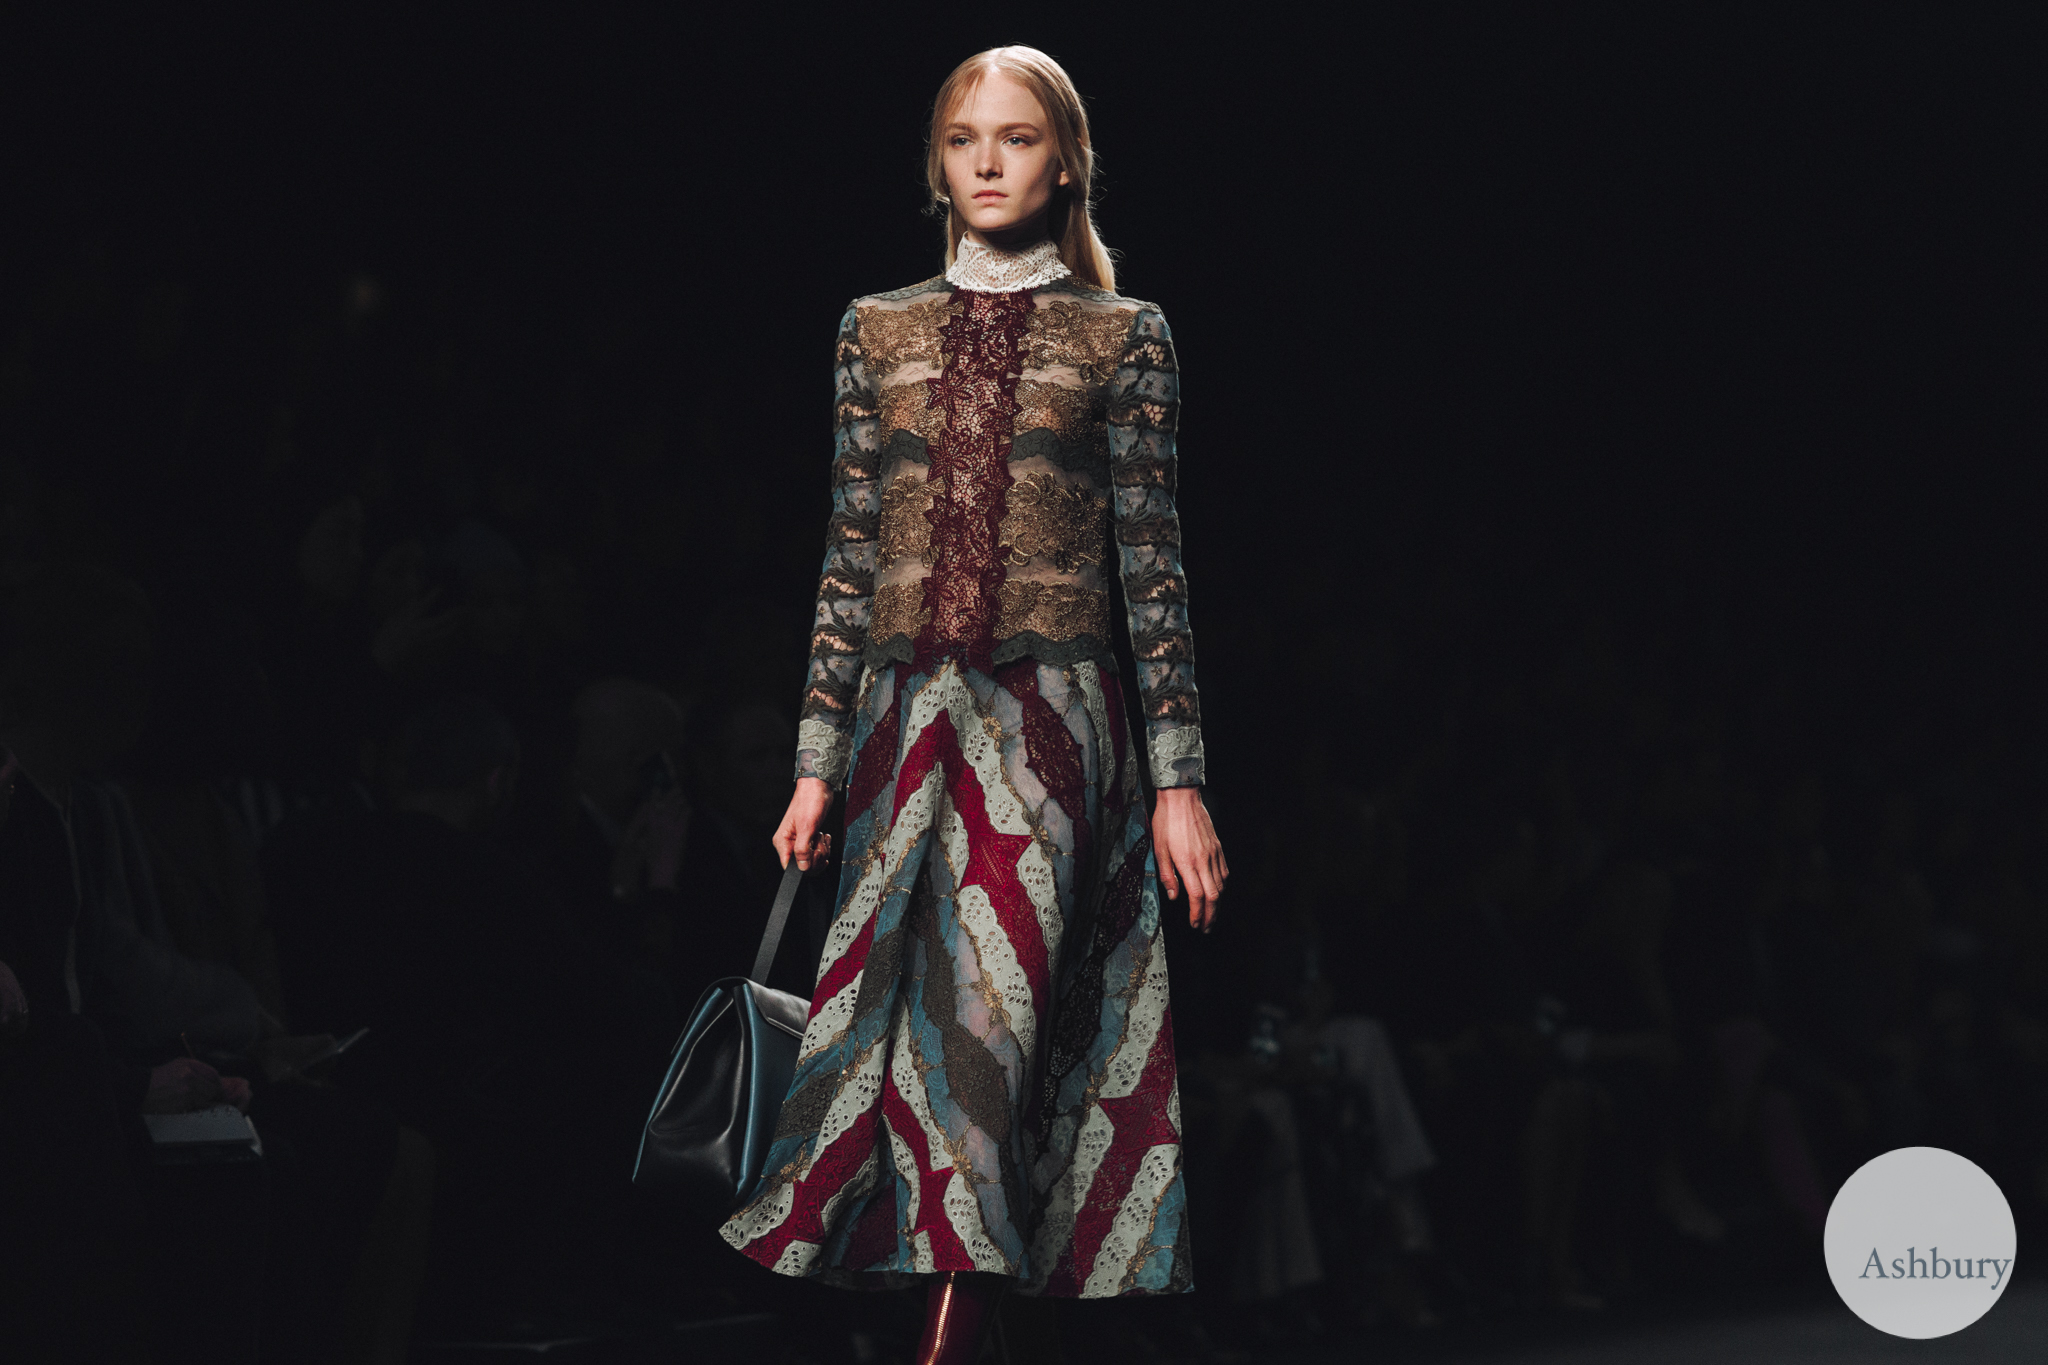 valentino fall winter 2015 - maja salamon